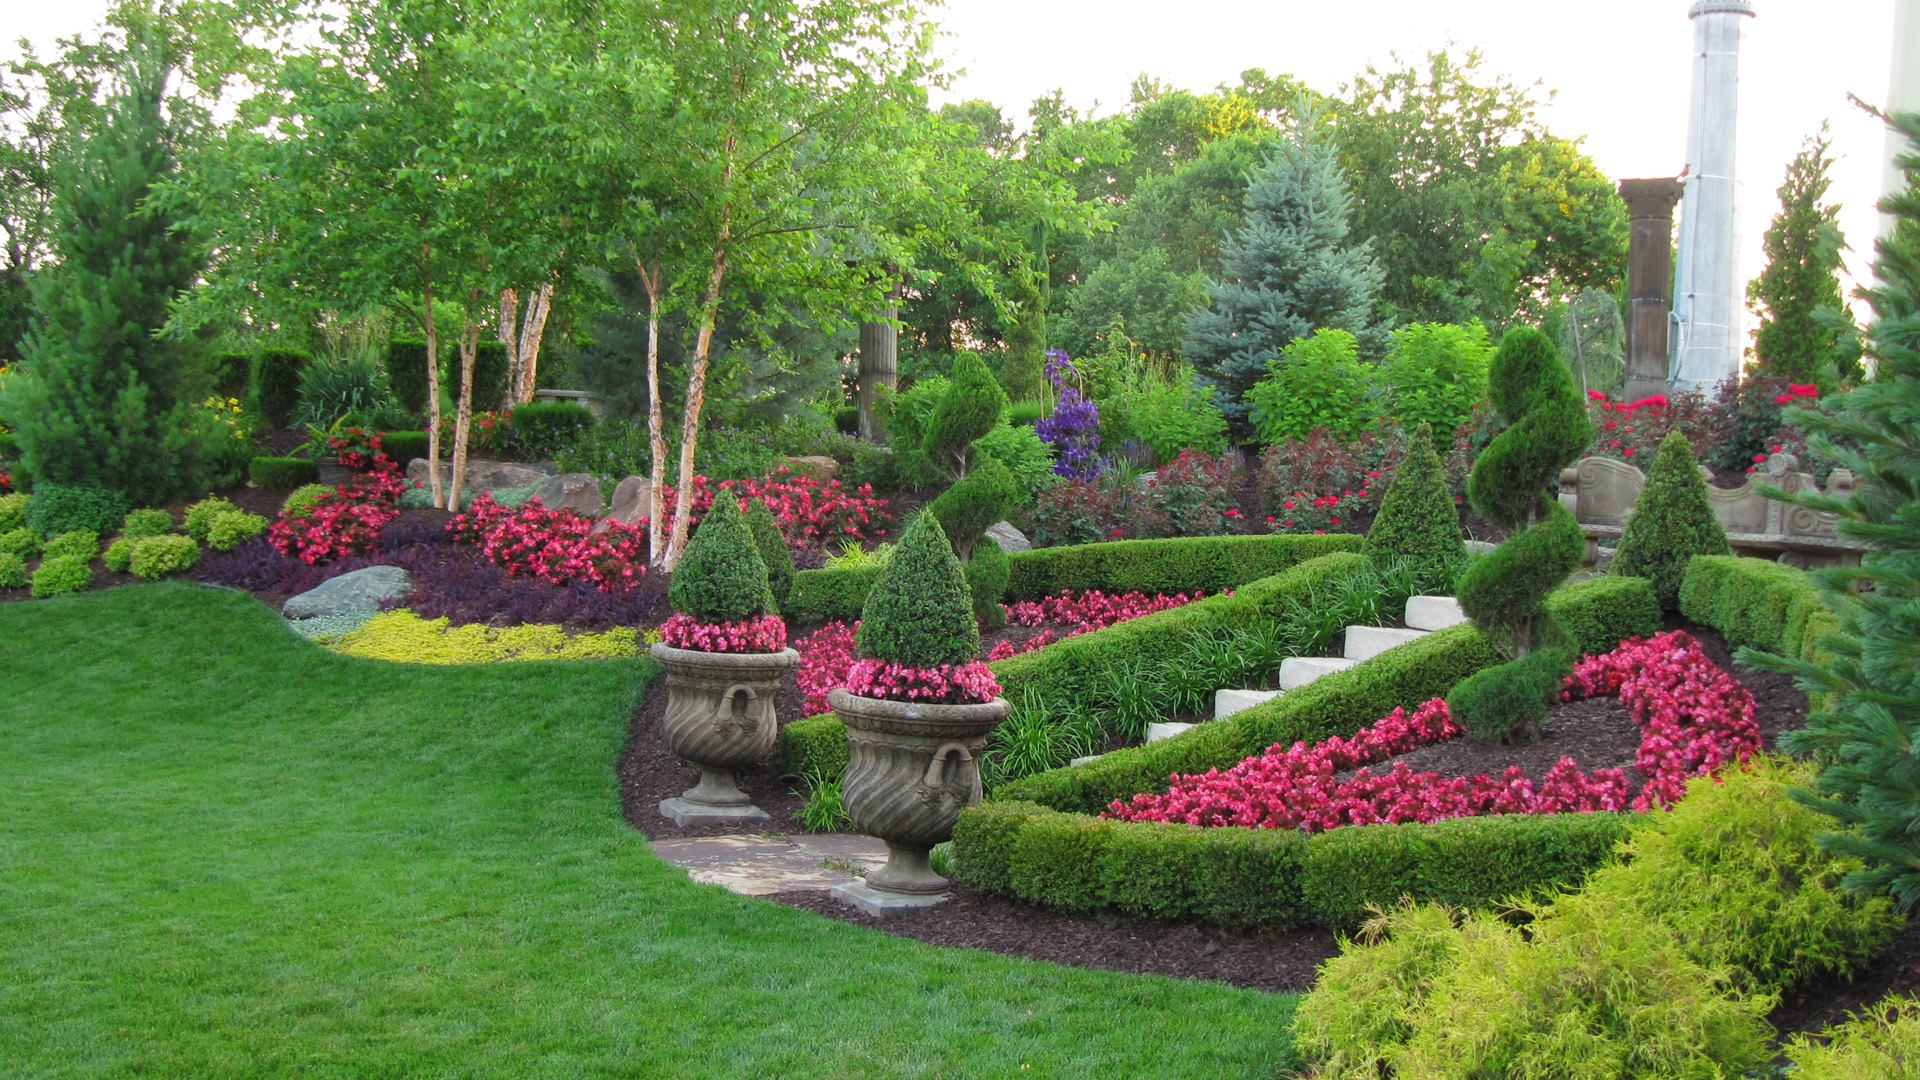 The Art of Mastering Gardeners